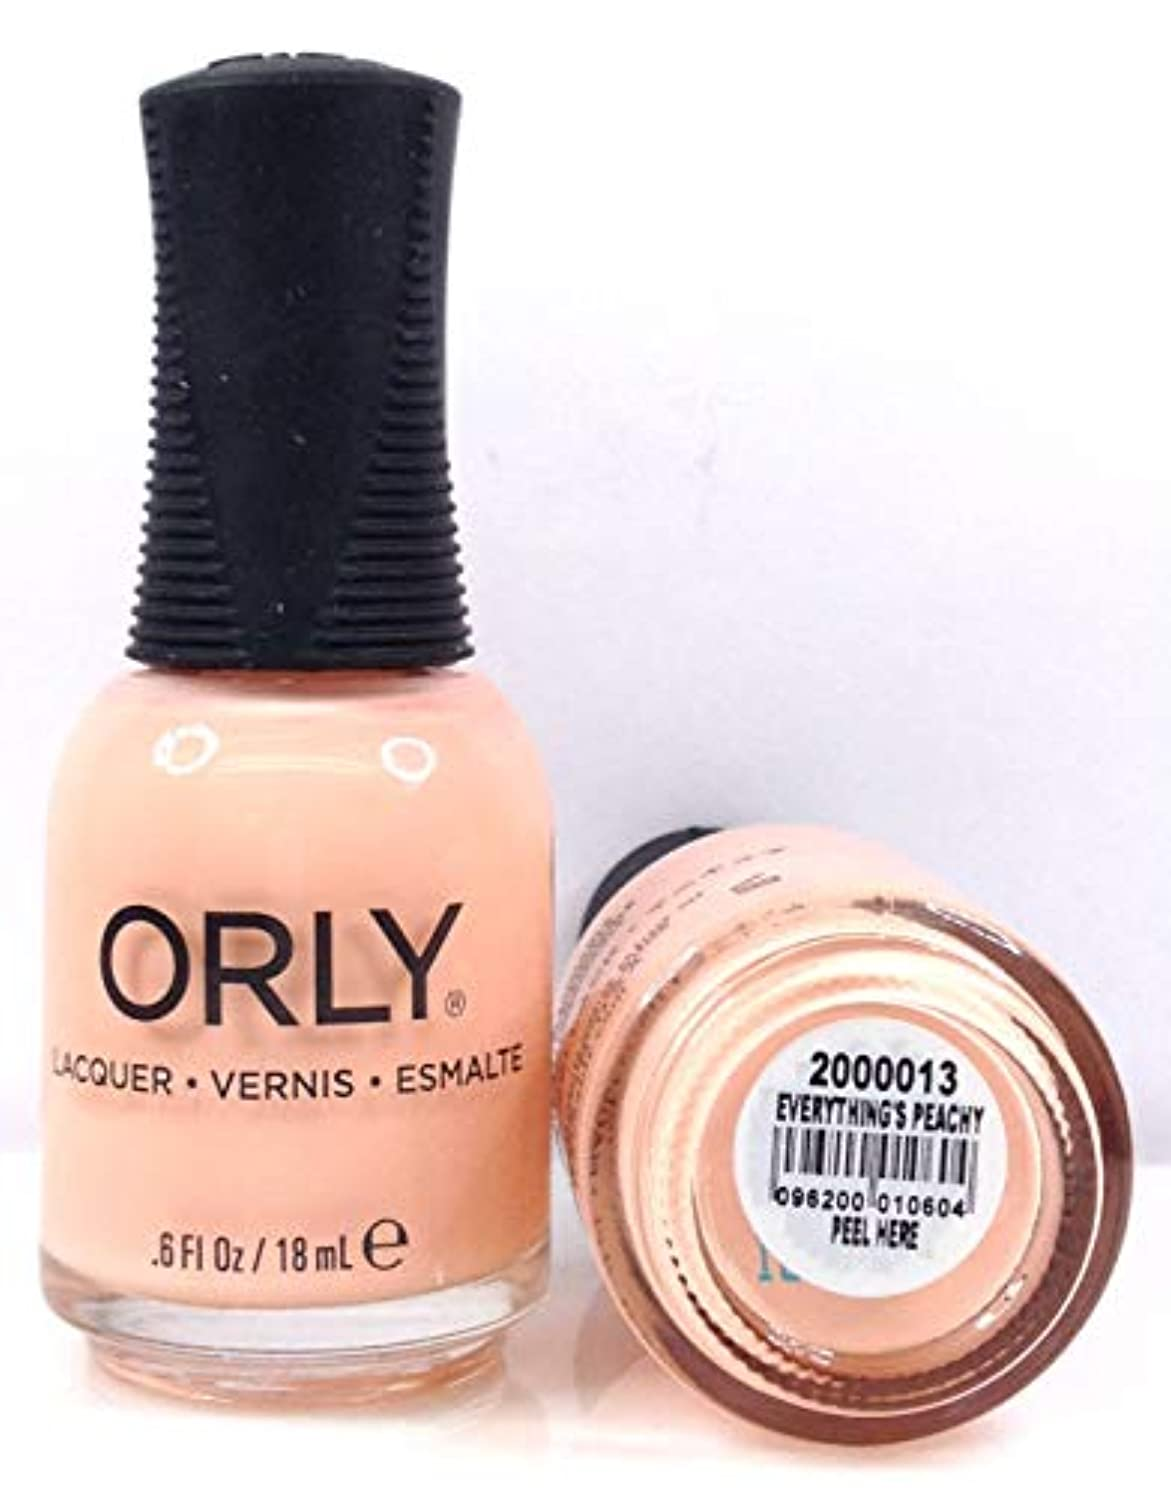 Orly Nail Lacquer - Radical Optimism 2019 Collection - Everything's Peachy - 0.6 oz / 18 mL